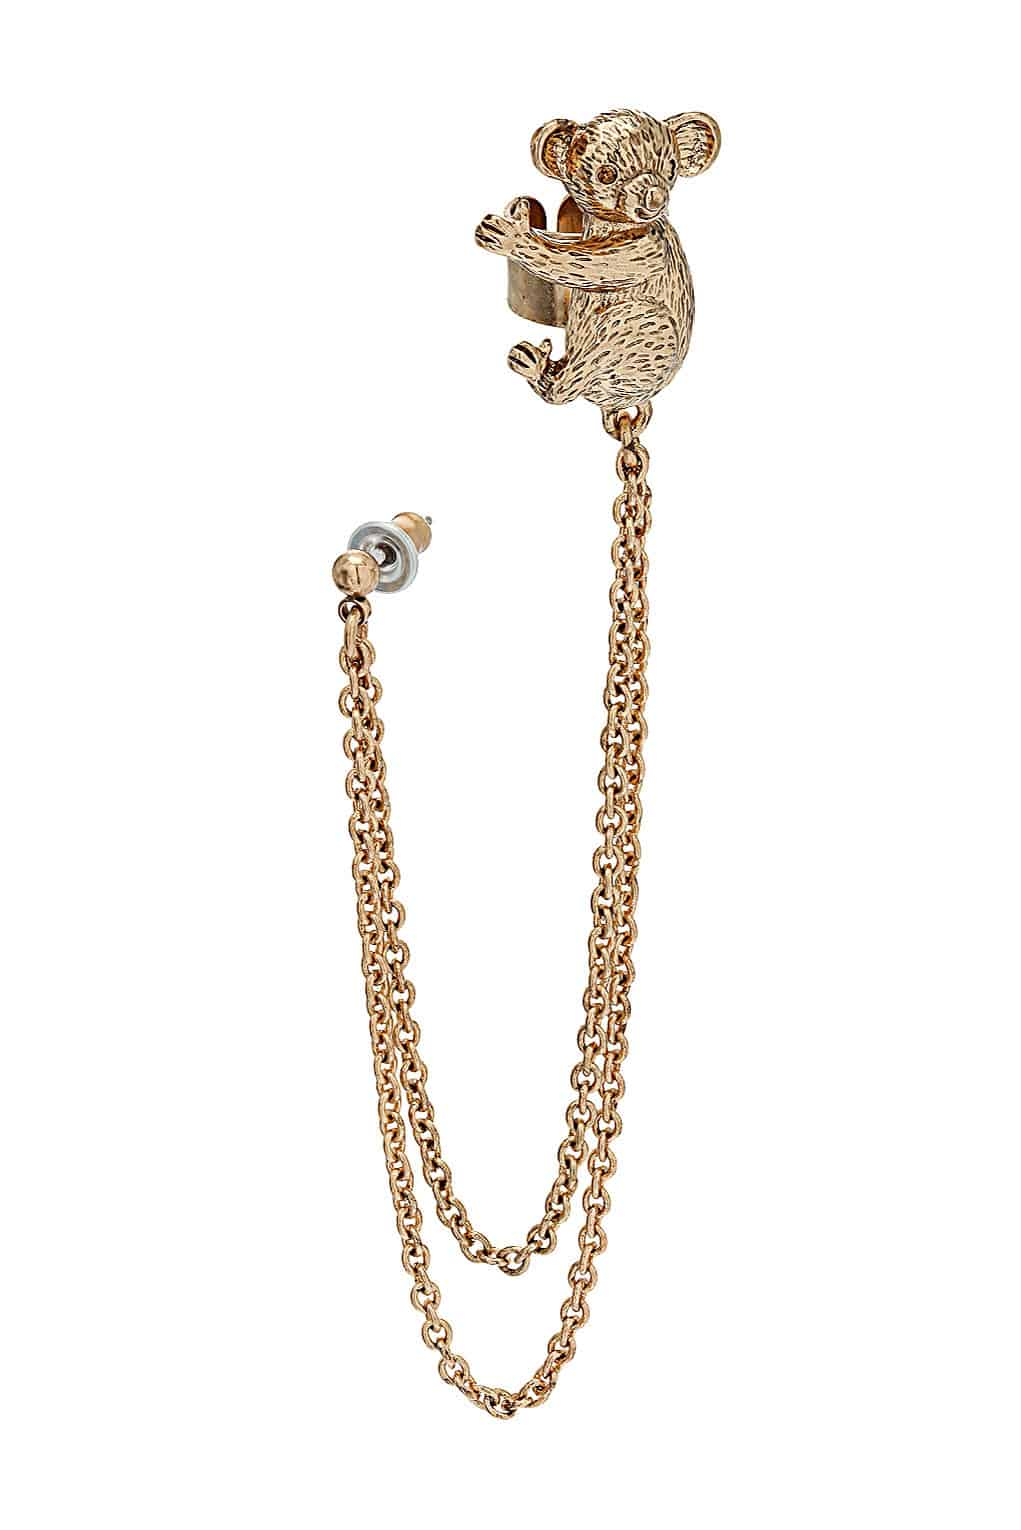 top shop ear cuff jp The New Bling: Ear Cuffs! Would You Wear Them Or Not?